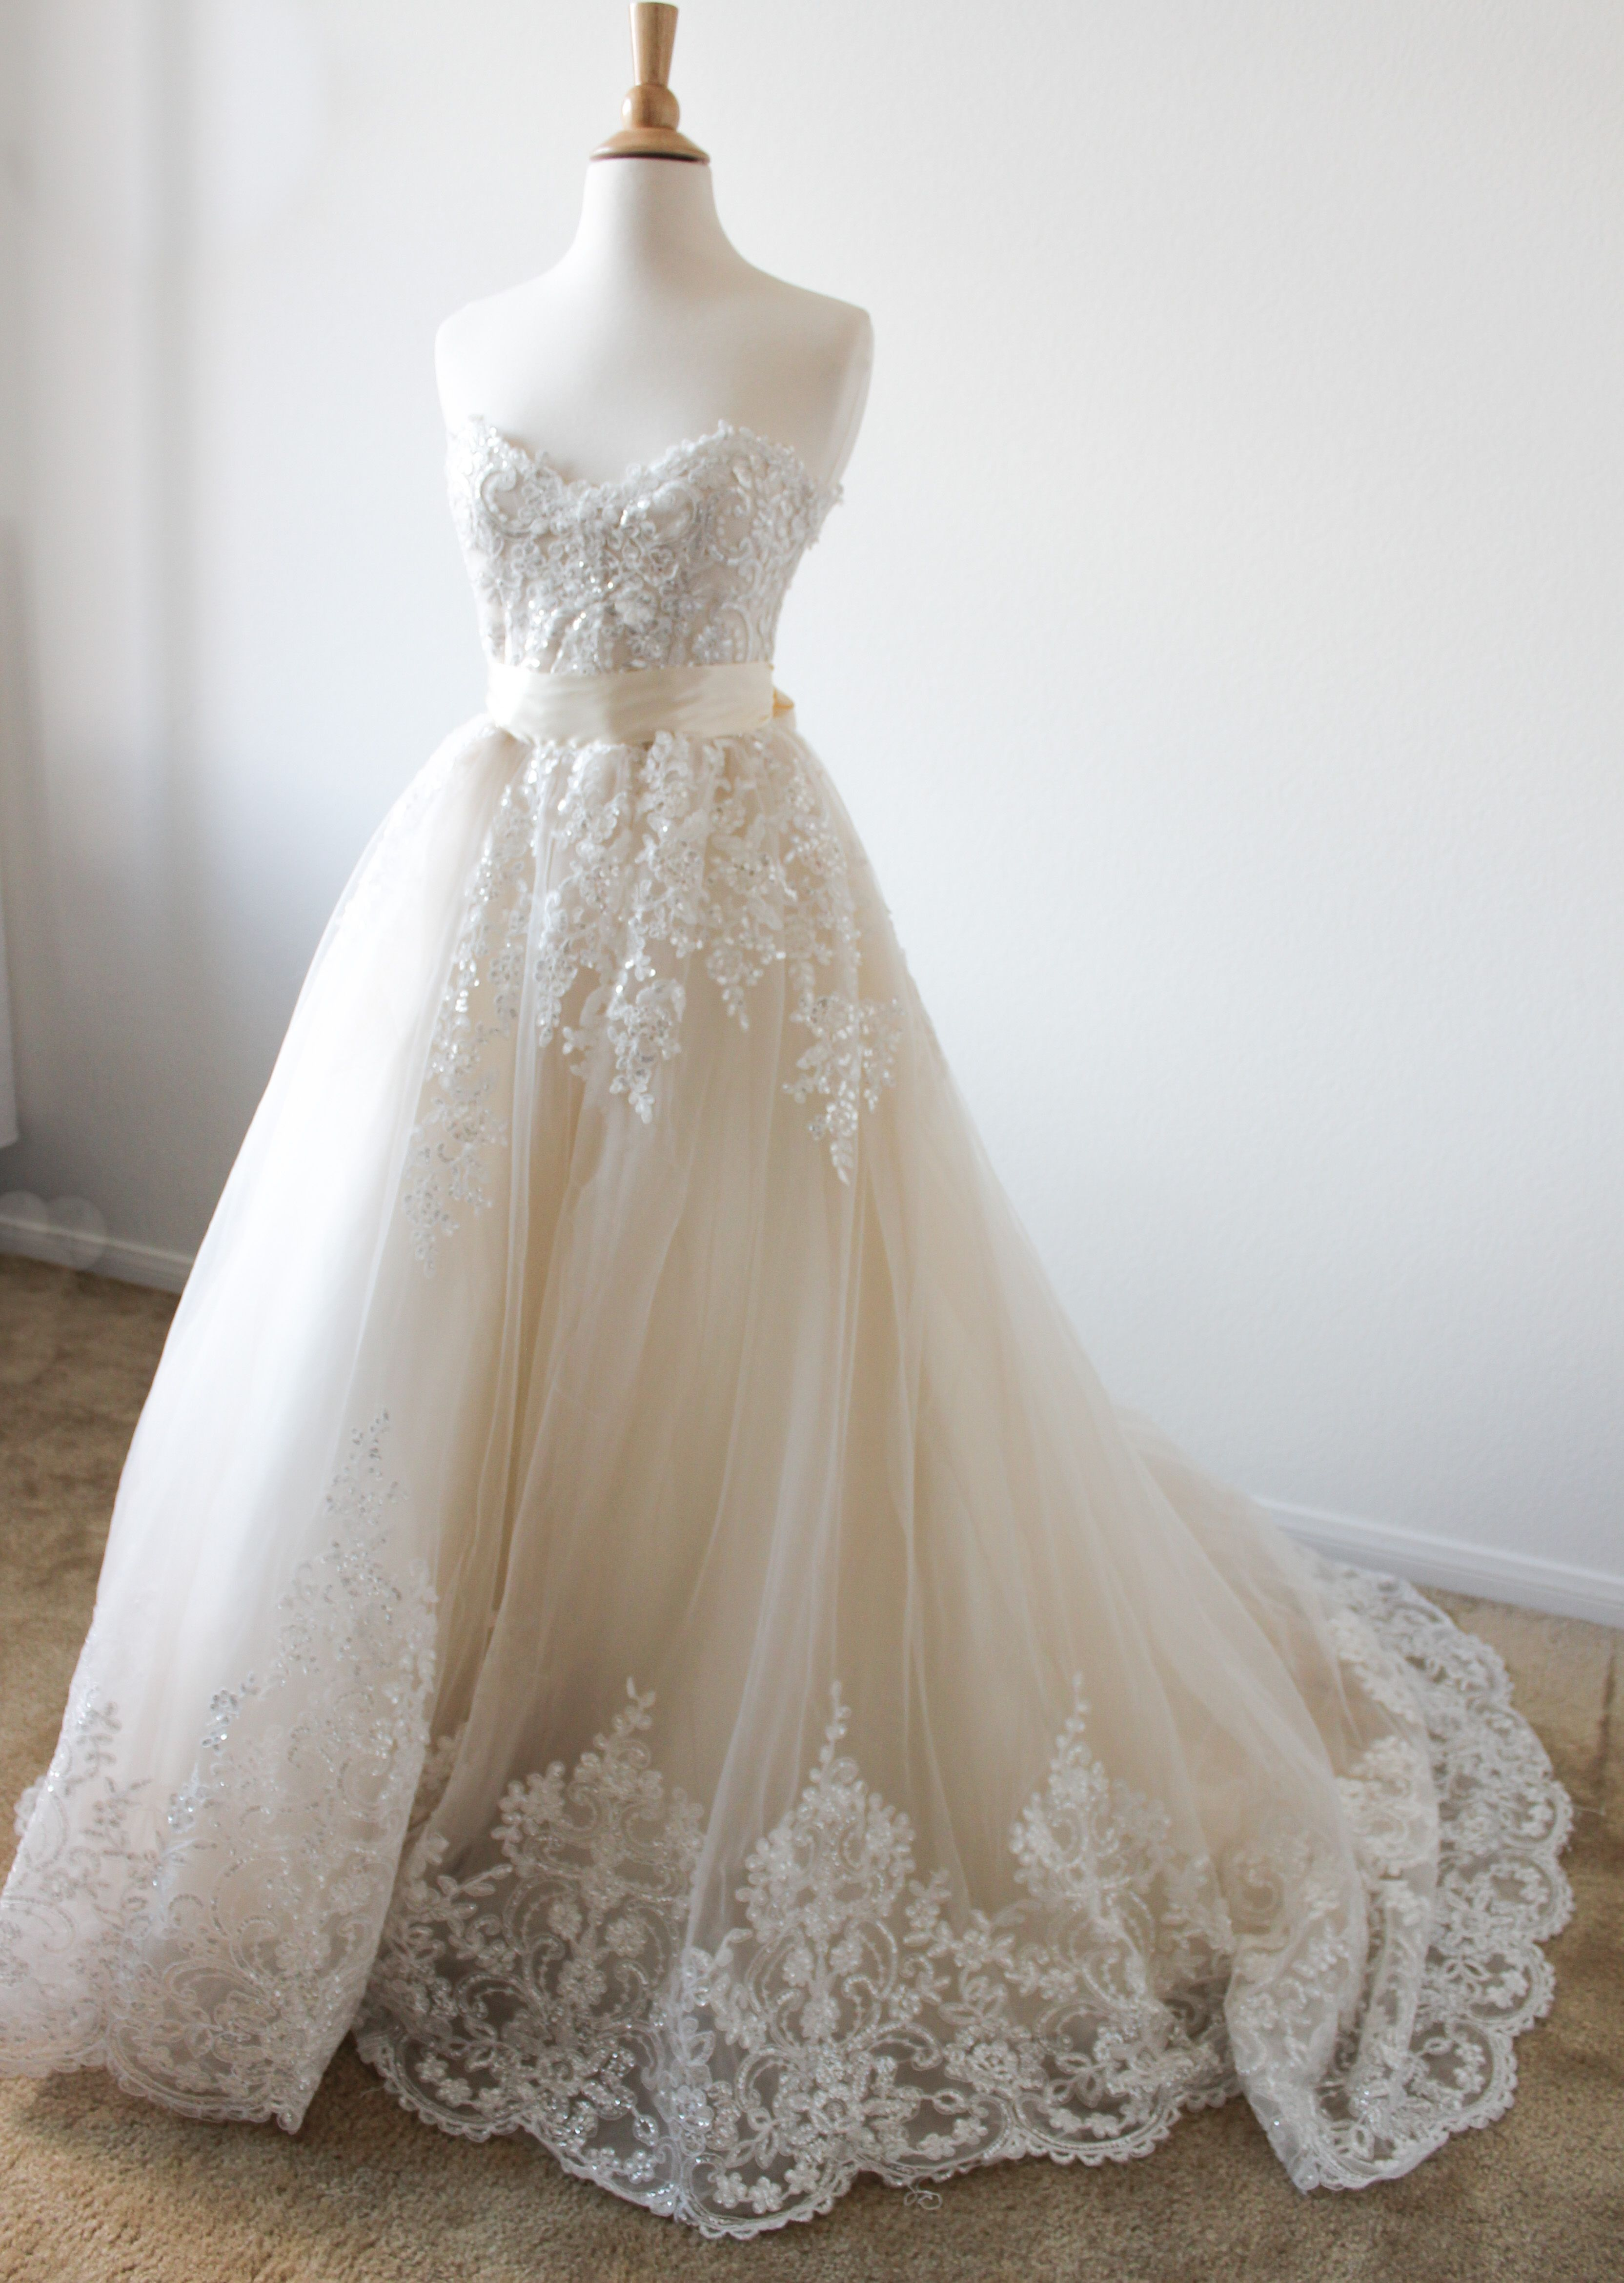 Handbeaded strapless aline bridal gown wedding dress bridal